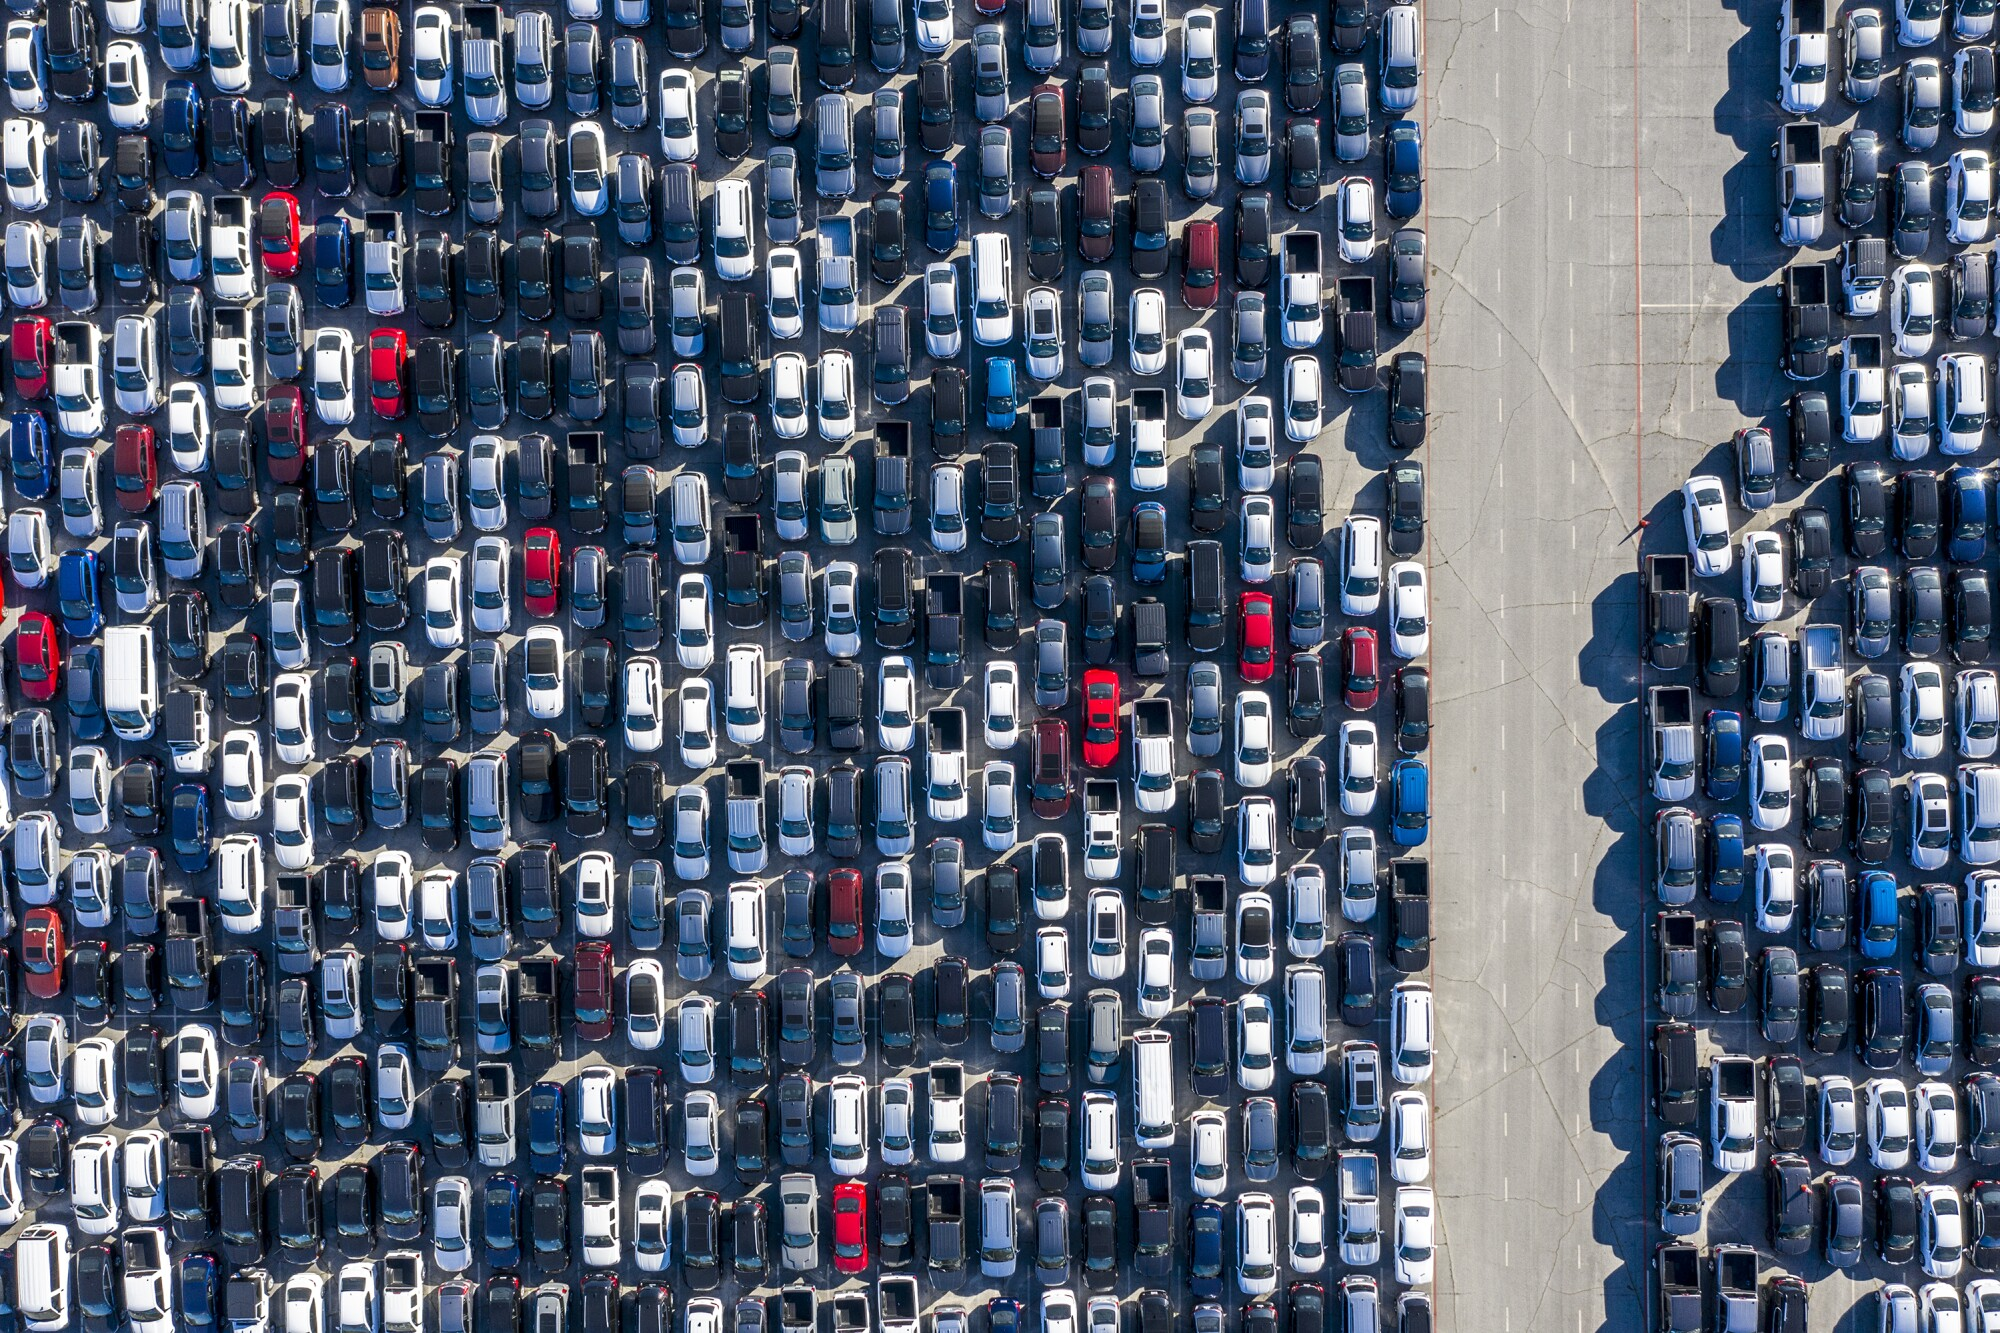 Thousands of rental cars are stored at Dodger Stadium.